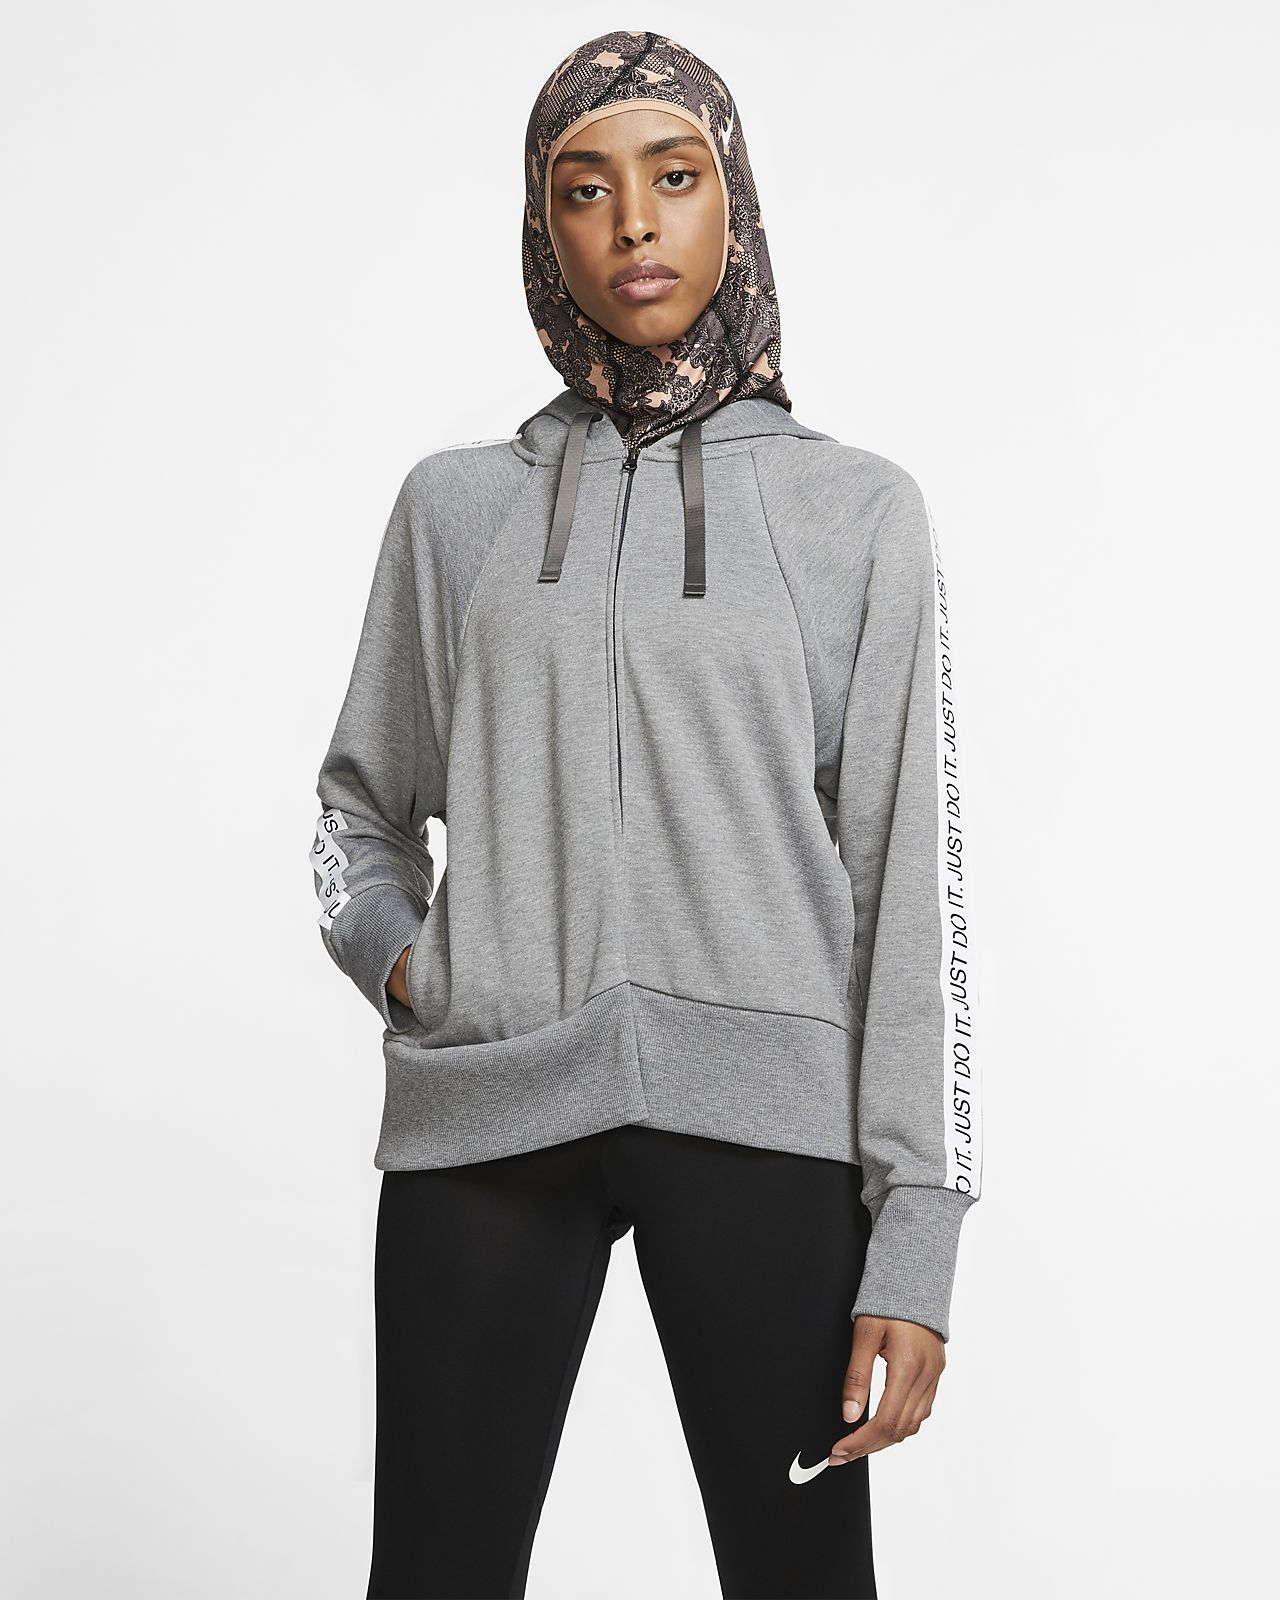 Nike Dri-FIT Get Fit Women's Full-Zip Fleece Training Hoodie